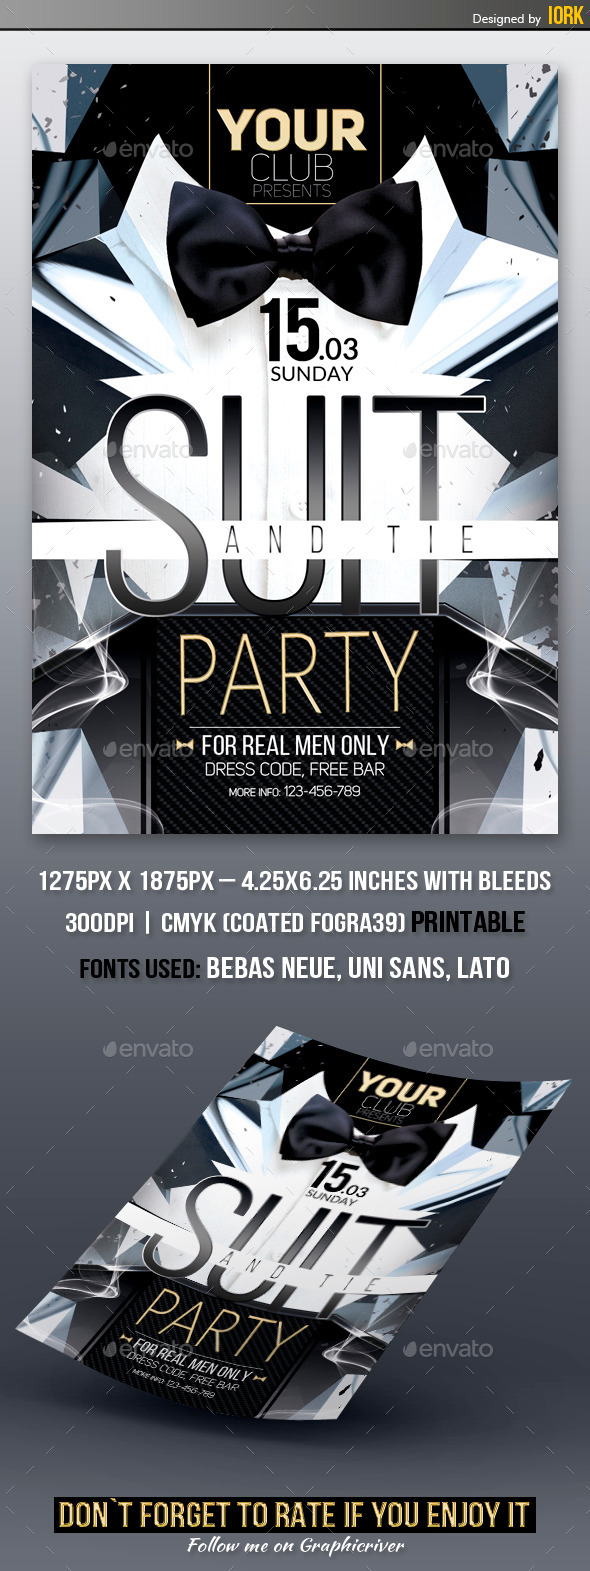 Suit and Tie Party Flyer - Clubs & Parties Events